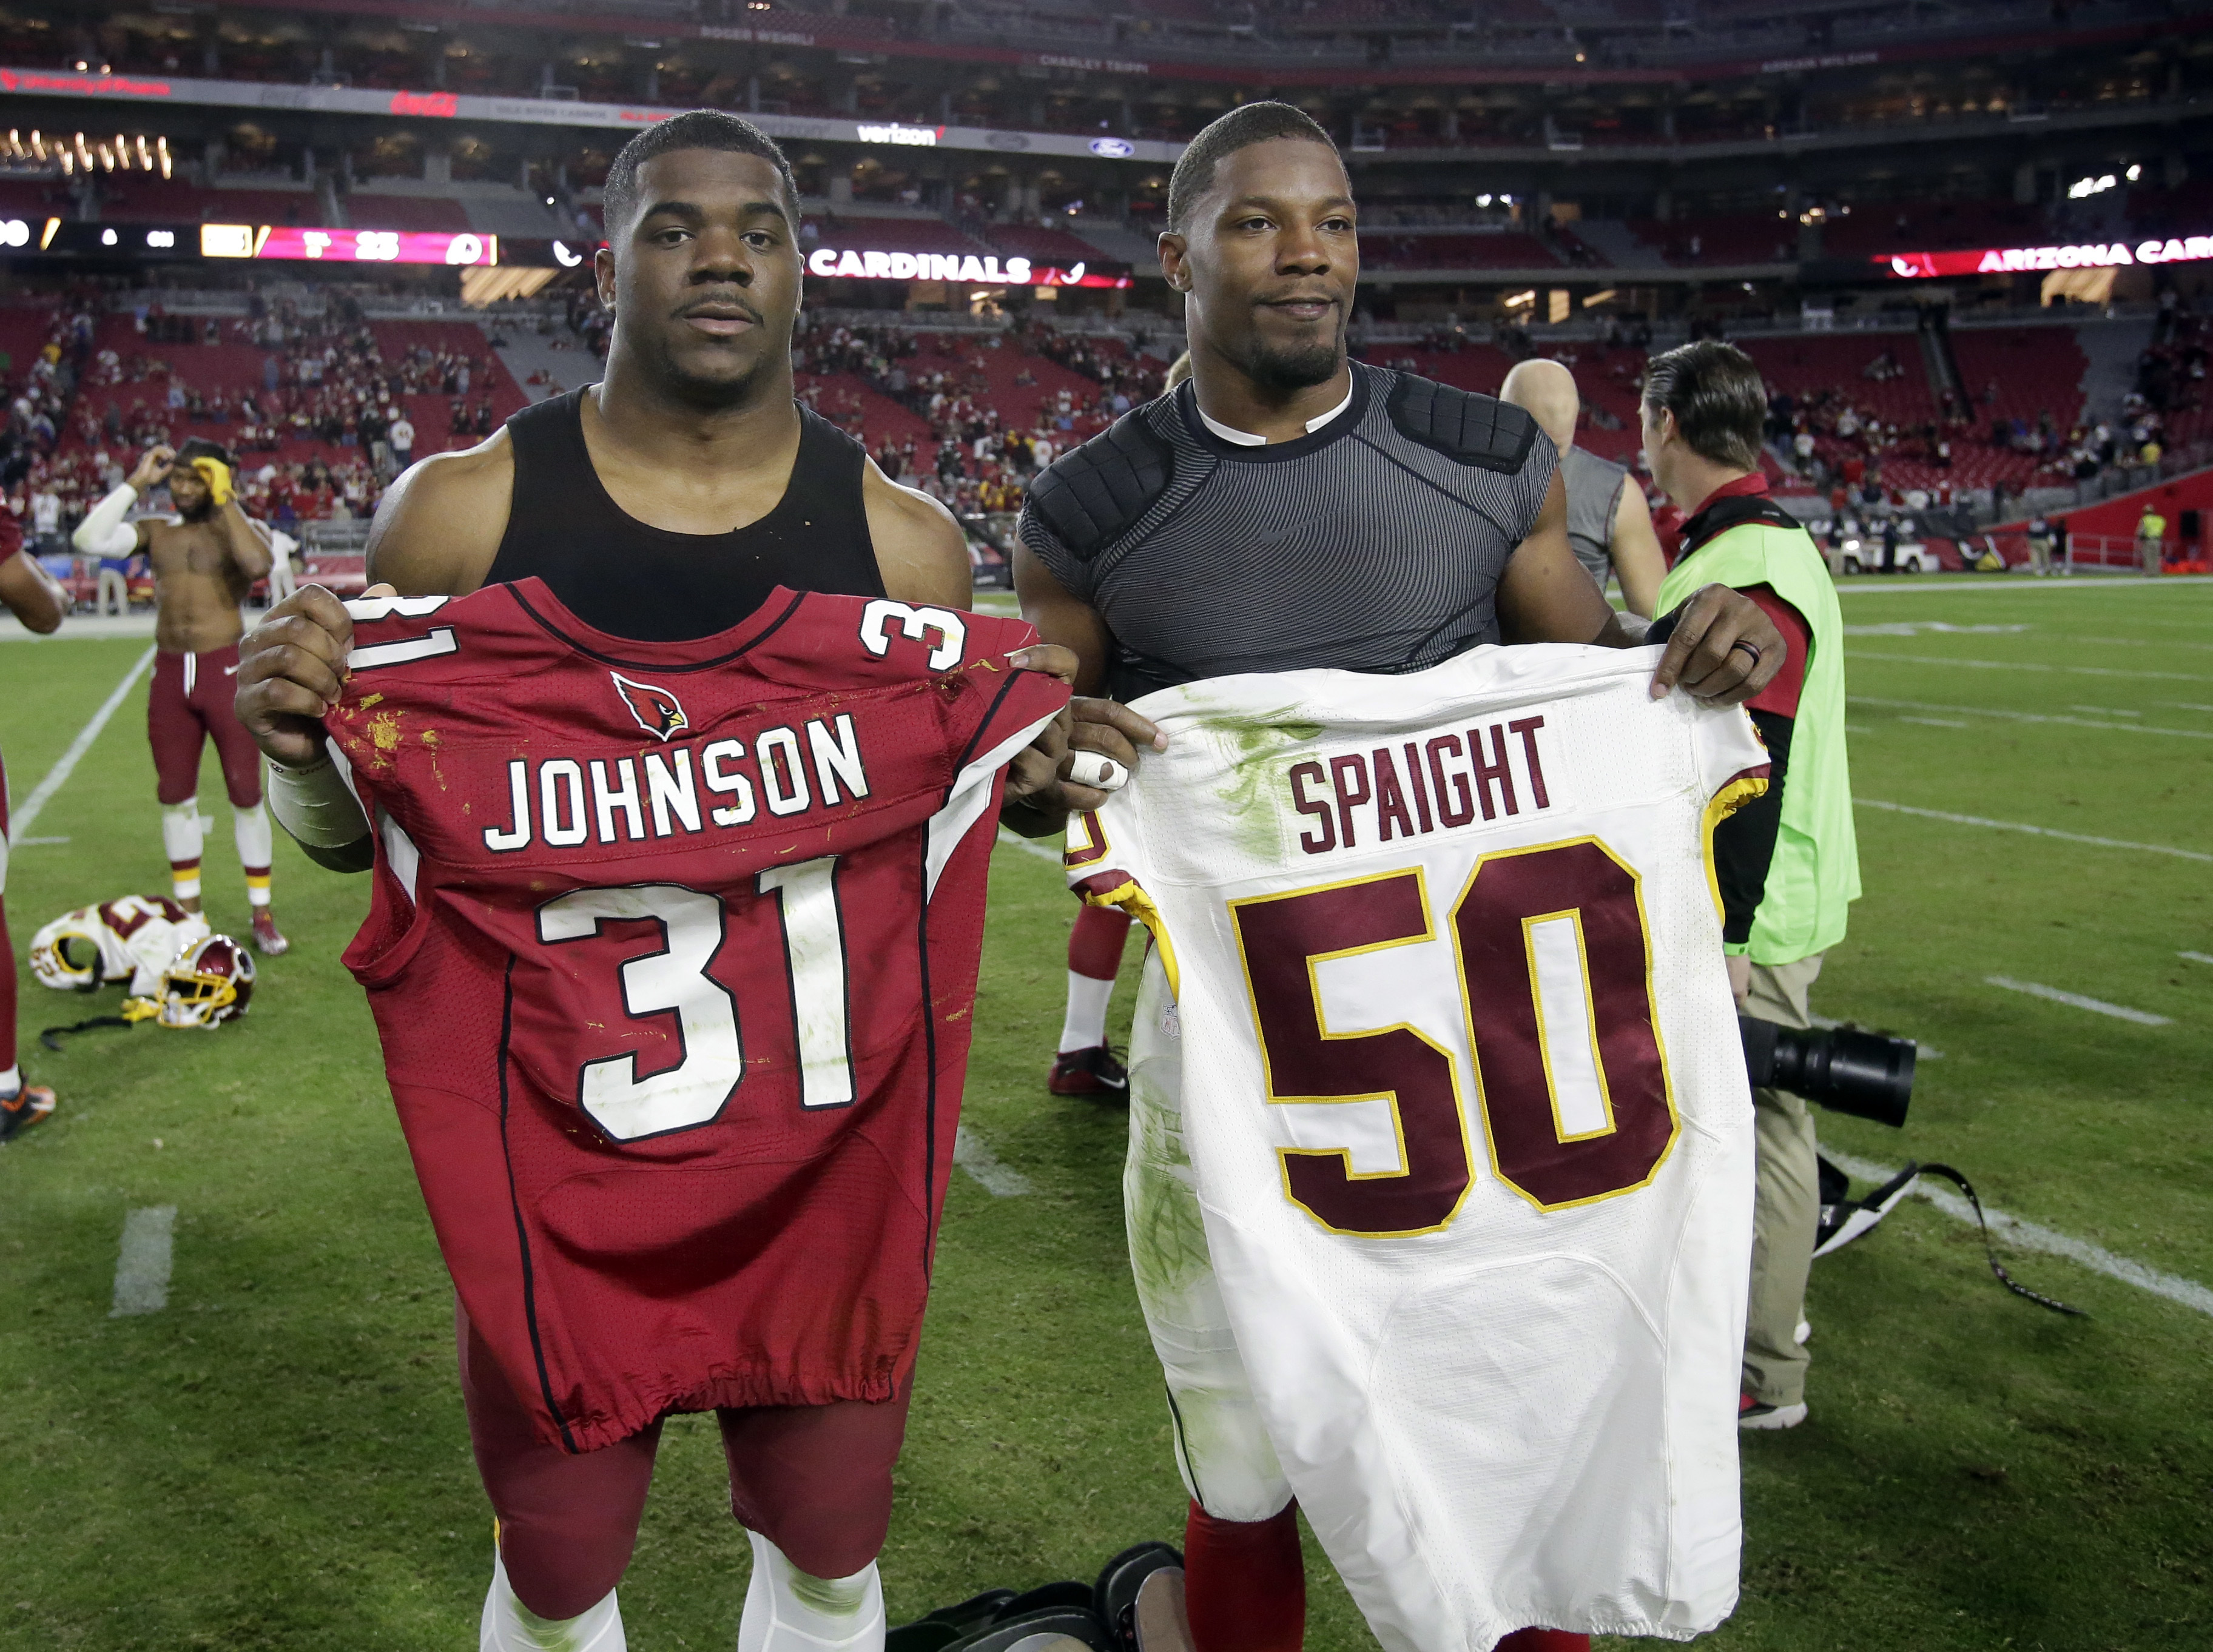 FILE - In this Dec. 4, 2016, file photo, Washington Redskins outside linebacker Martrell Spaight , left, and Arizona Cardinals running back David Johnson swap jerseys after an NFL football game in Glendale, Ariz. Last year Spaight was so sensitive to ligh